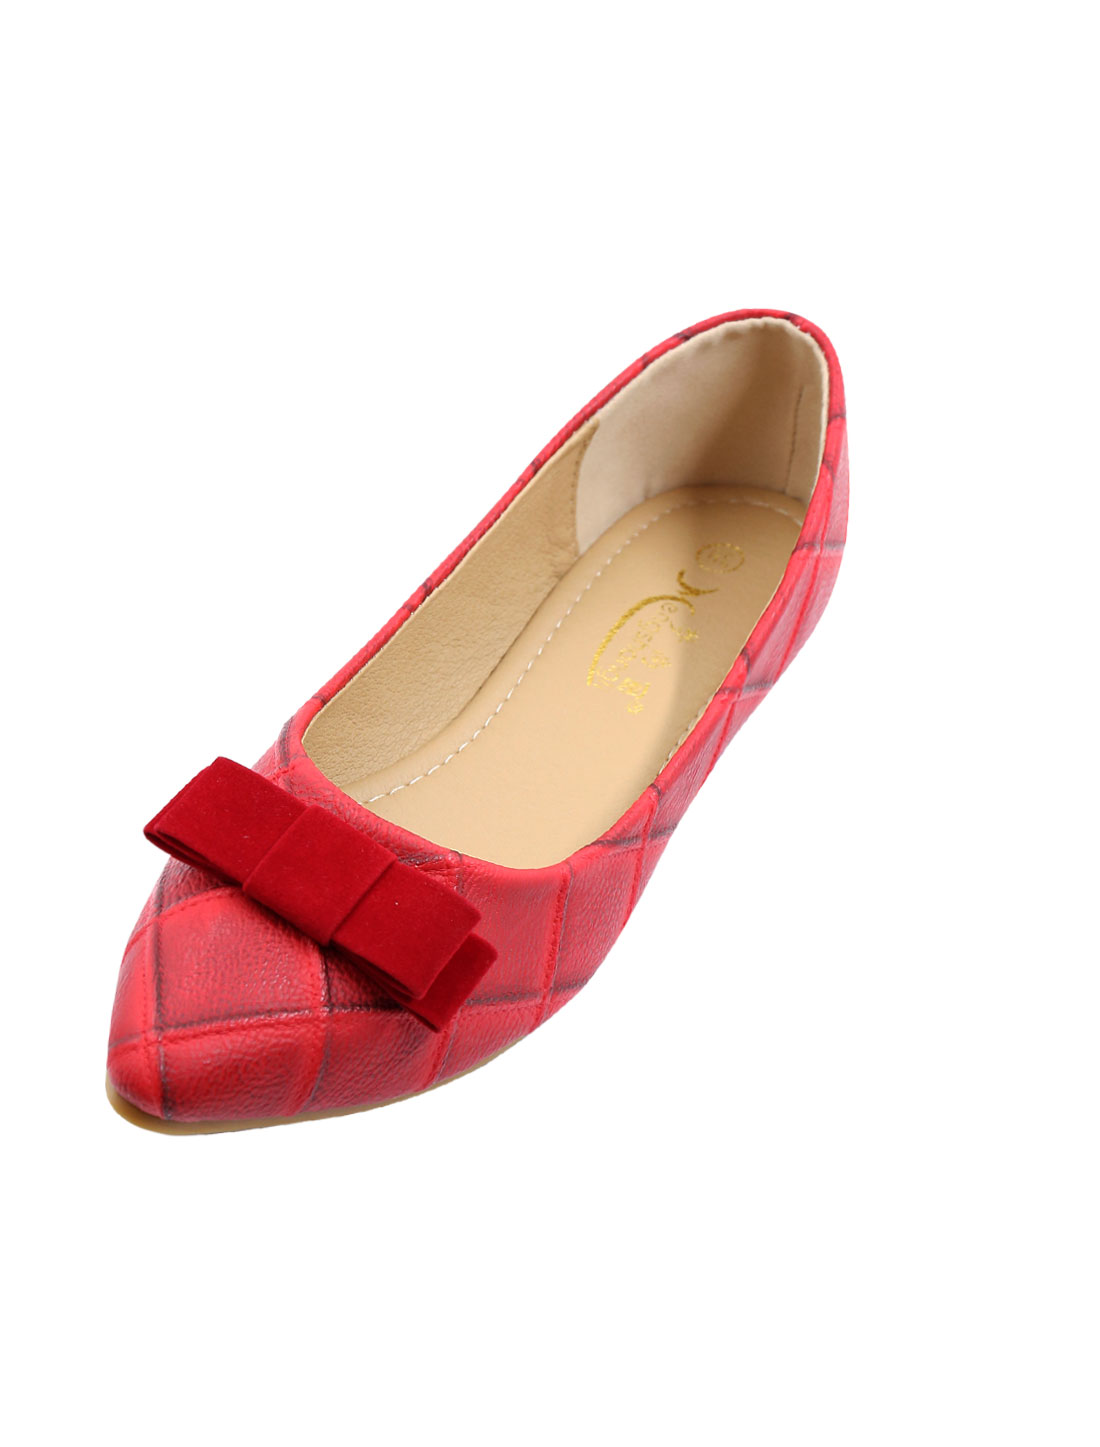 Ladies Pointed Toe Argyle Pattern Bowknot Embellished Leisure Flats Red US 8